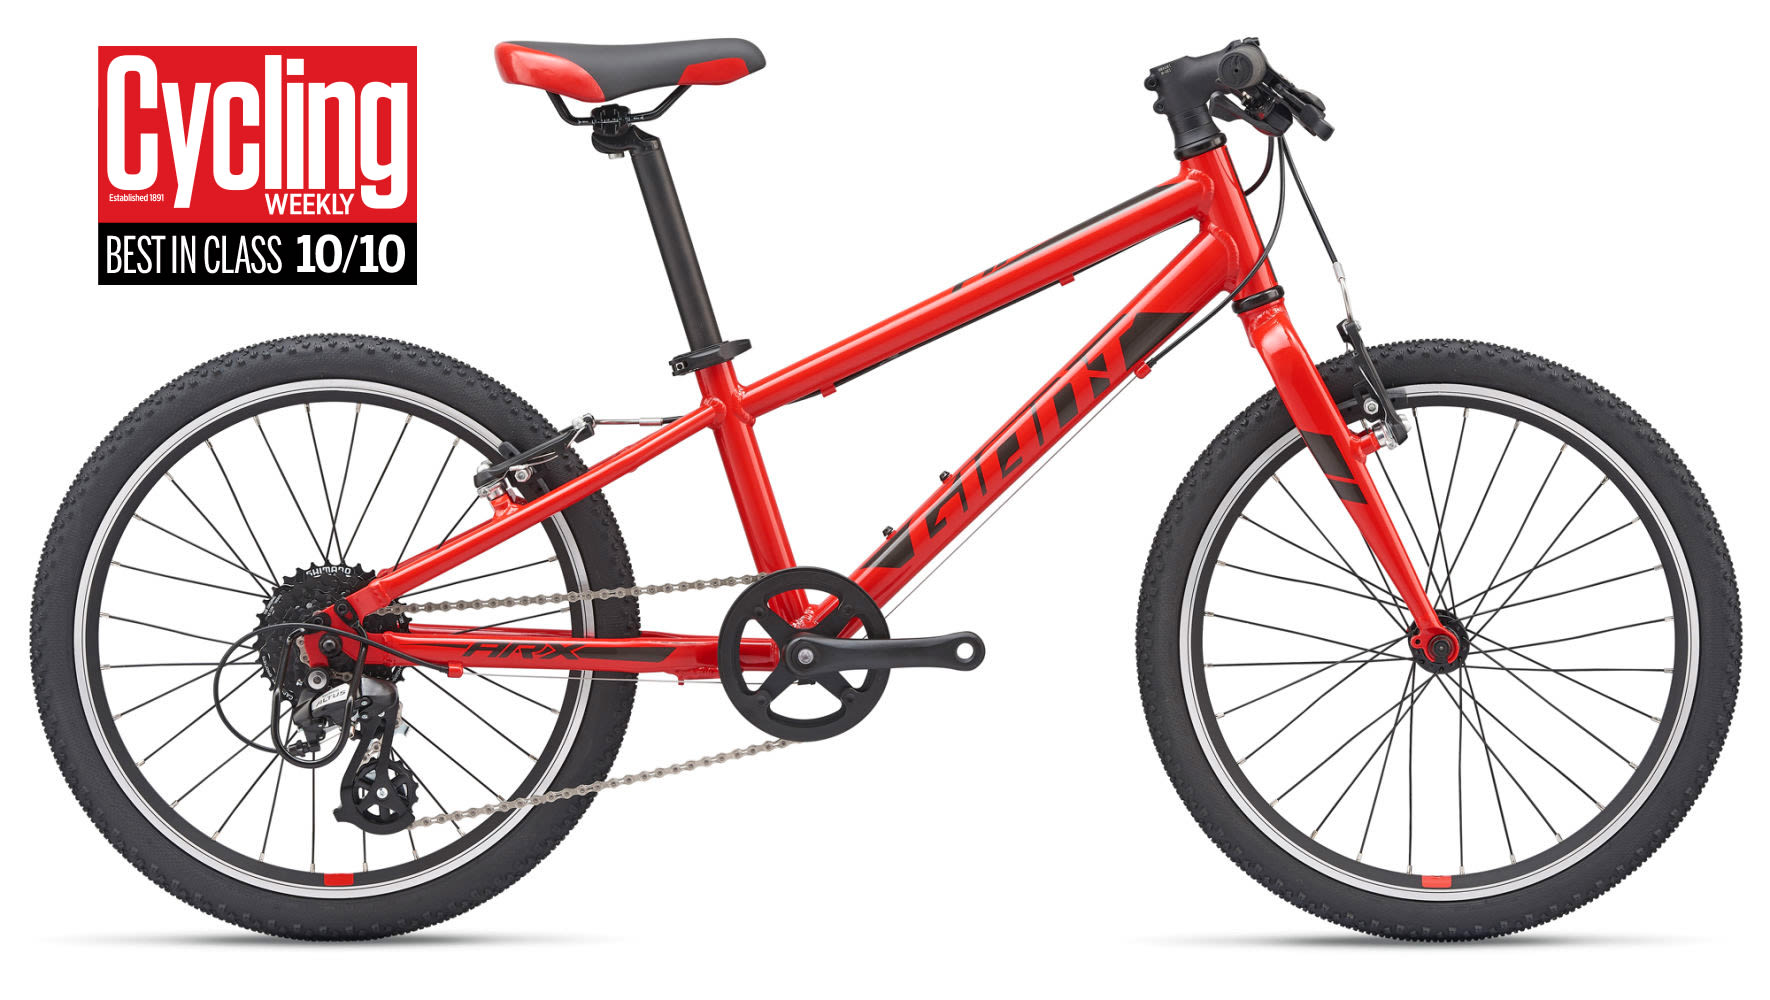 2019 Giant Arx 20 Childs Bike In Red 163 299 00